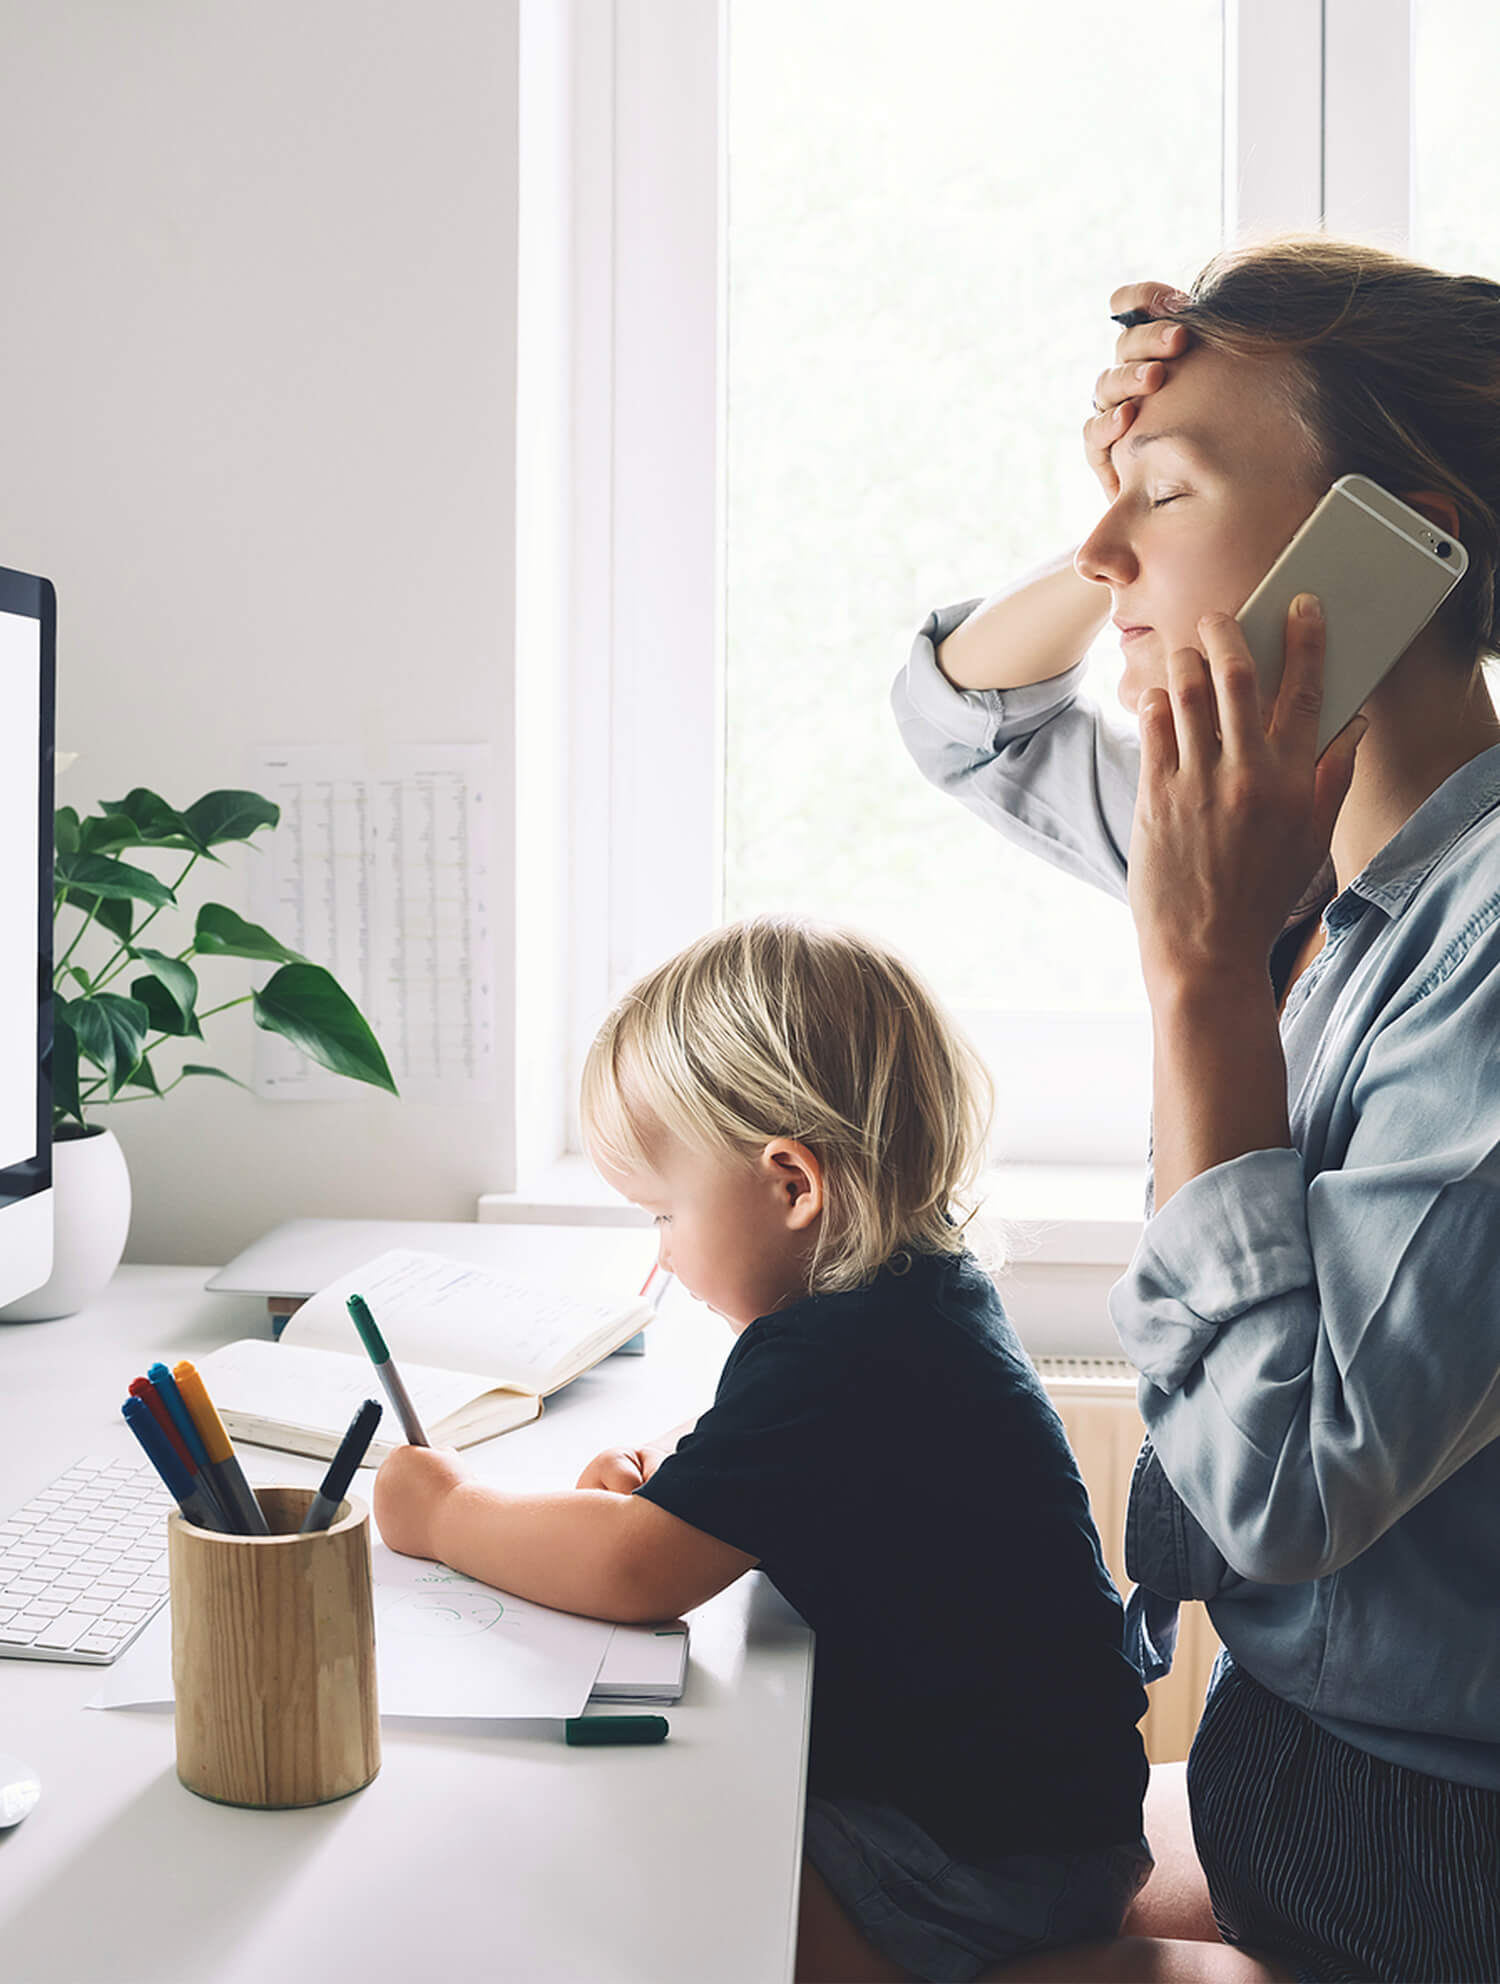 Mom in distress on phone while son draws. If you're looking for stress management therapy, CBT for stress can help. Consider working with a stress therapist to develop healthy coping skills! Begin stress therapy in Chicago, Riverside, IL, Berwyn, or Forest Park soon!